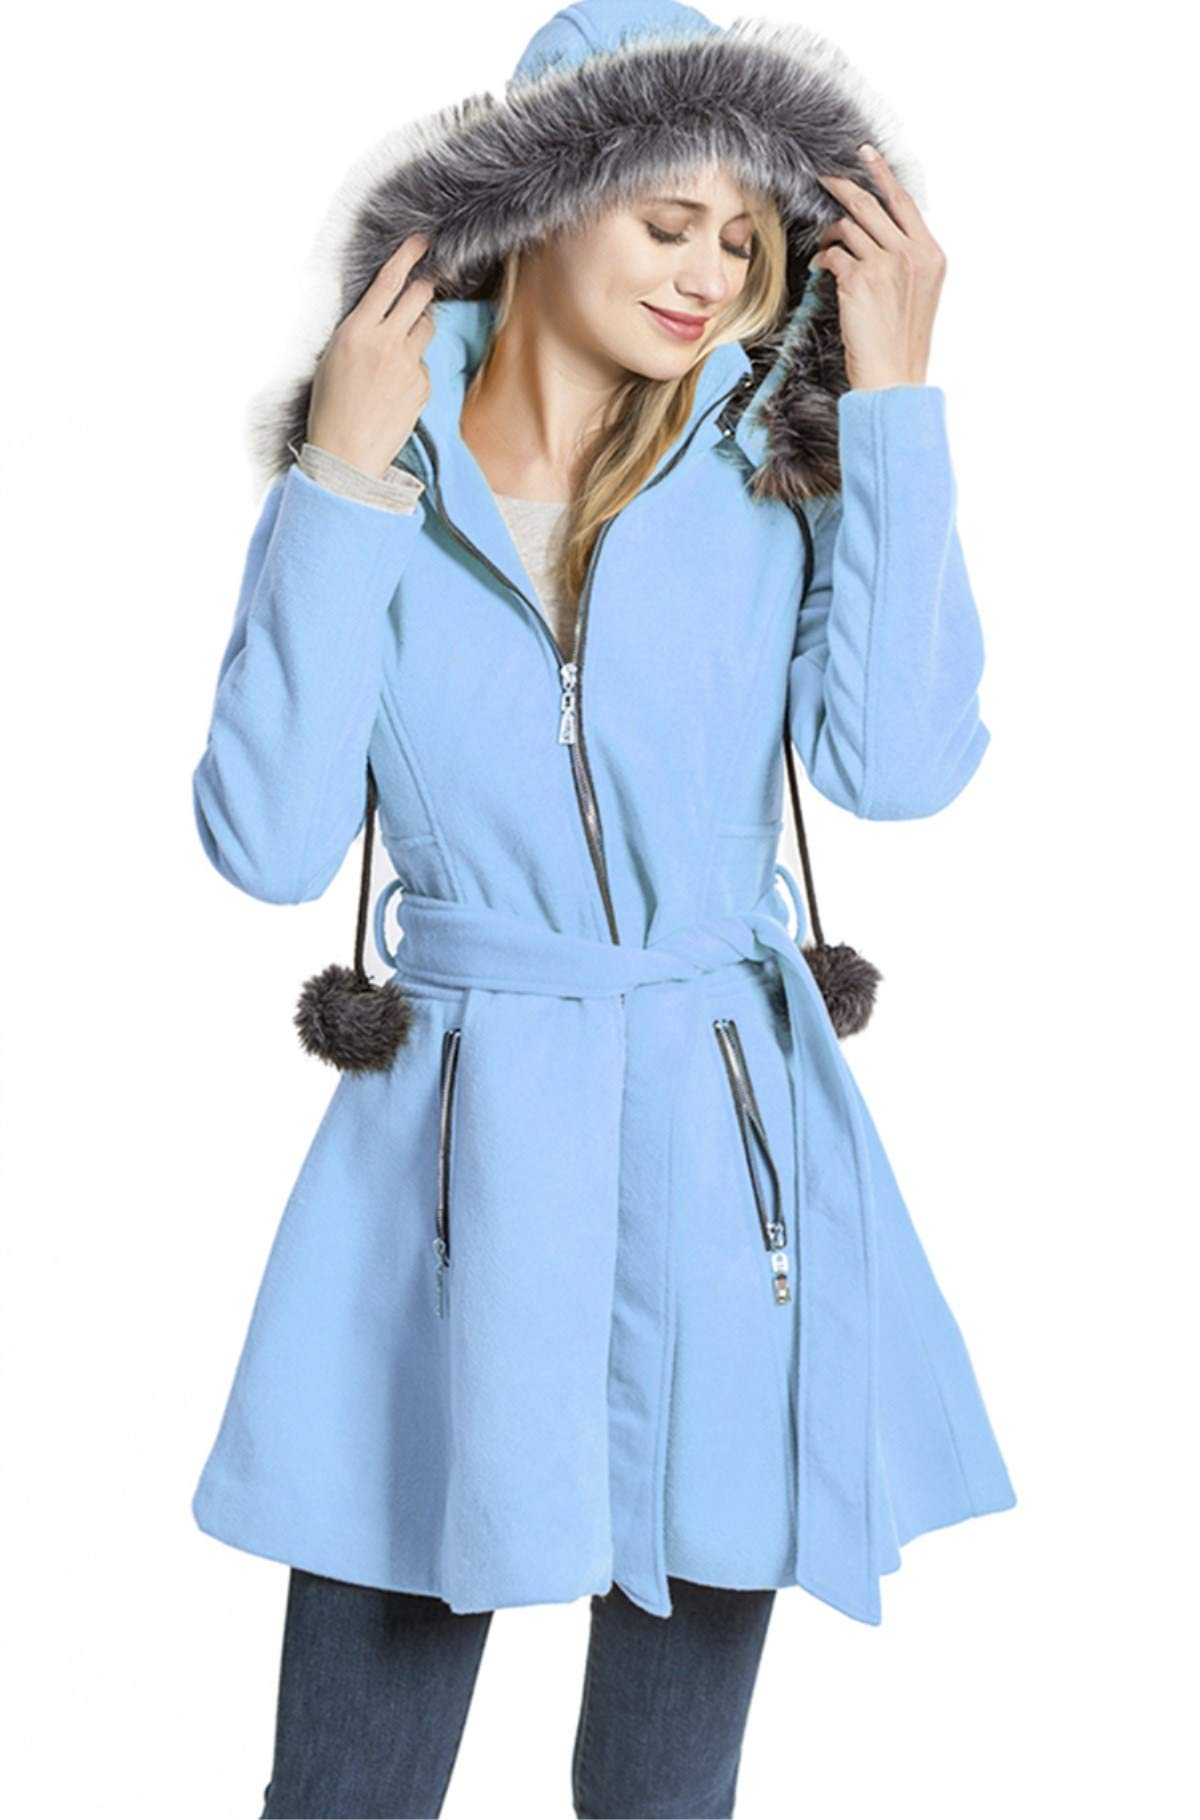 KENGURU COVE Women's Wool Trench Coat Lapel Wrap Swing Winter with Removable Fur Collar Long Overcoat Jacket